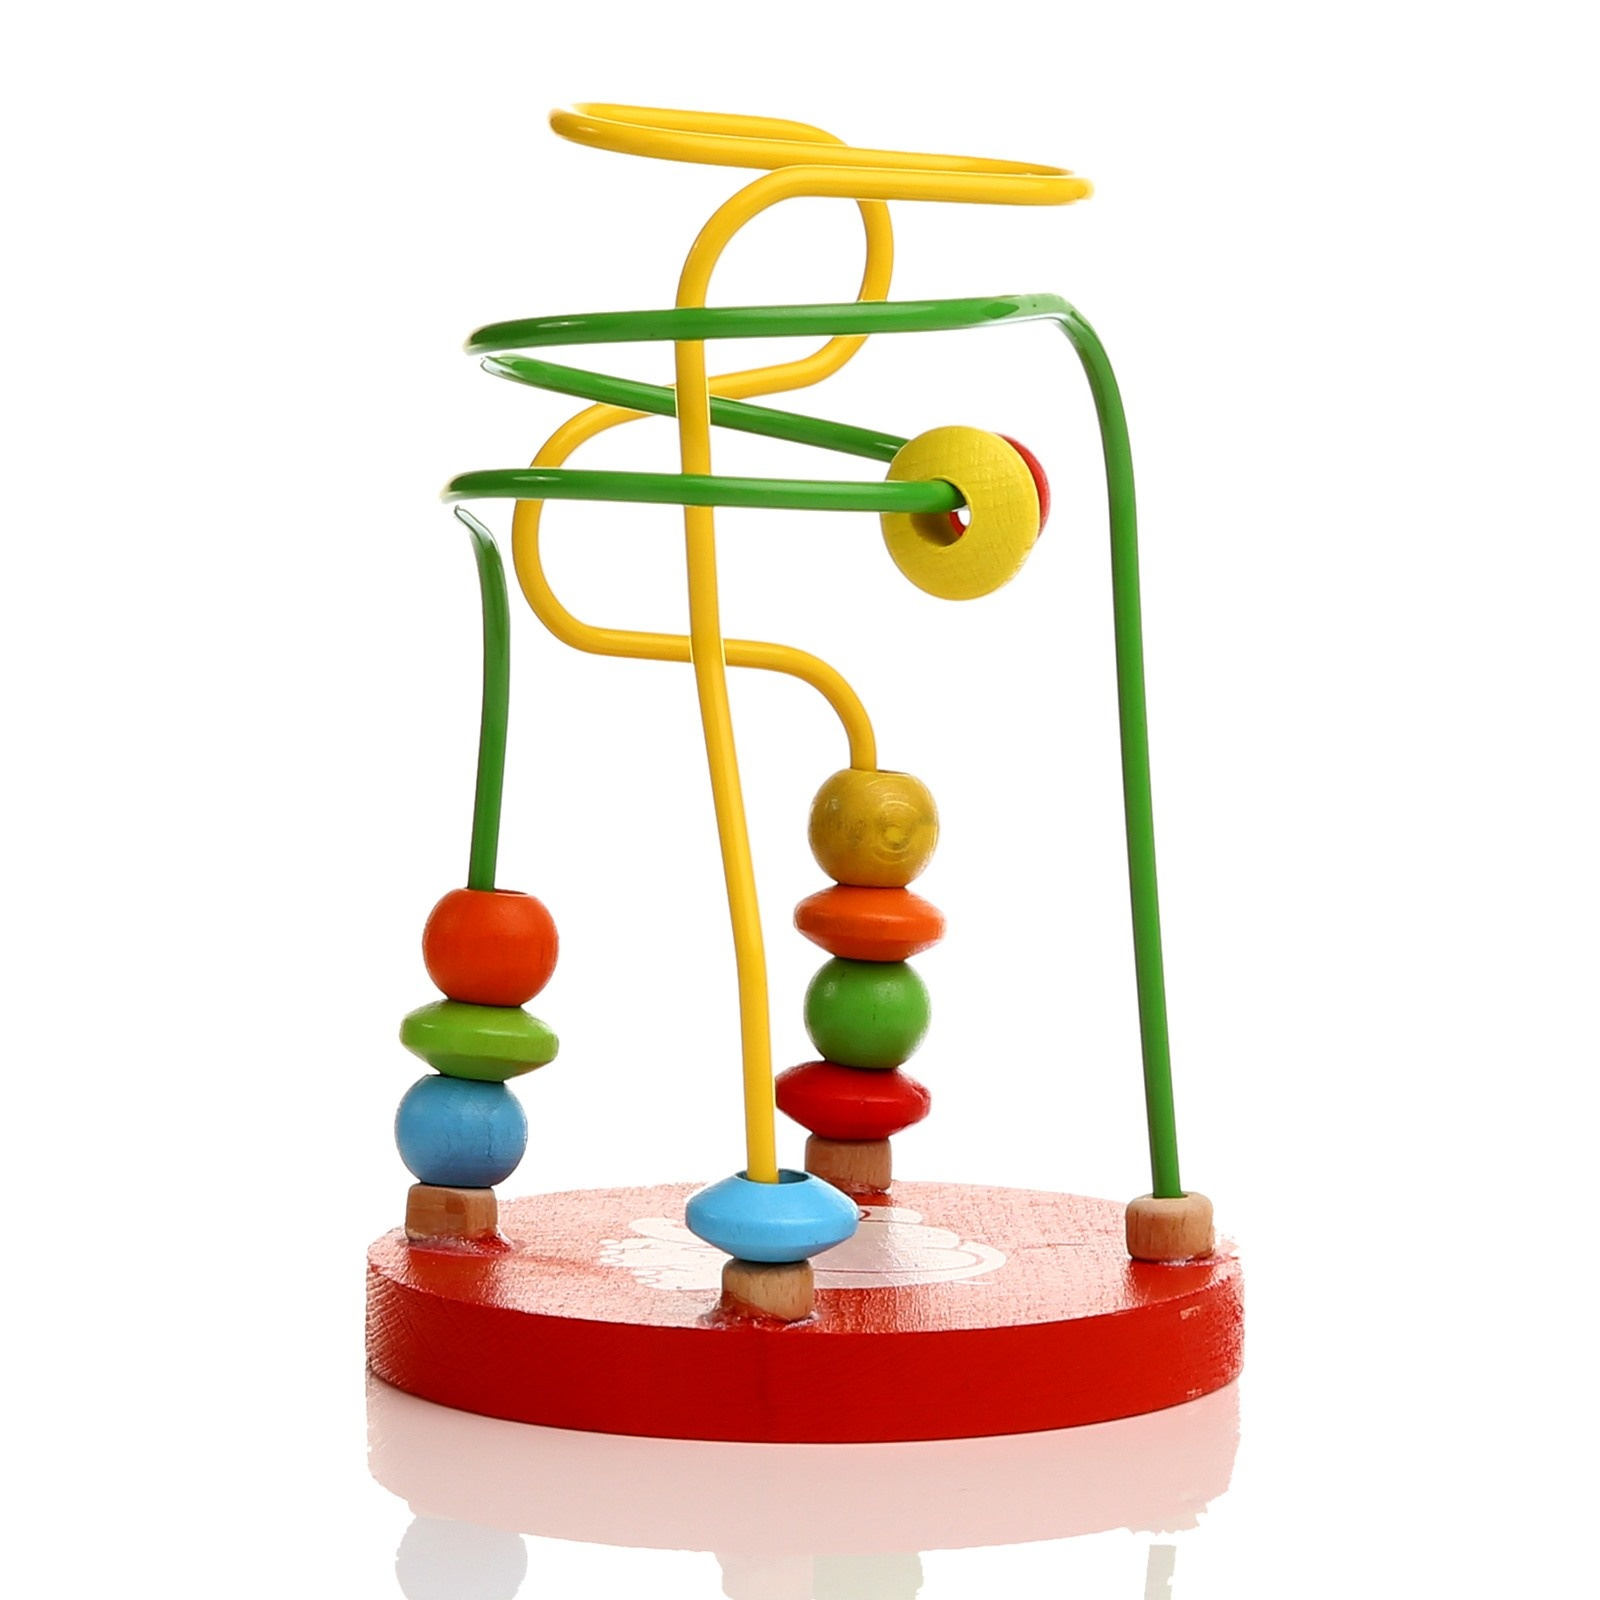 Ebebek Baby Toys Wooden Baby Mini Coordination Game